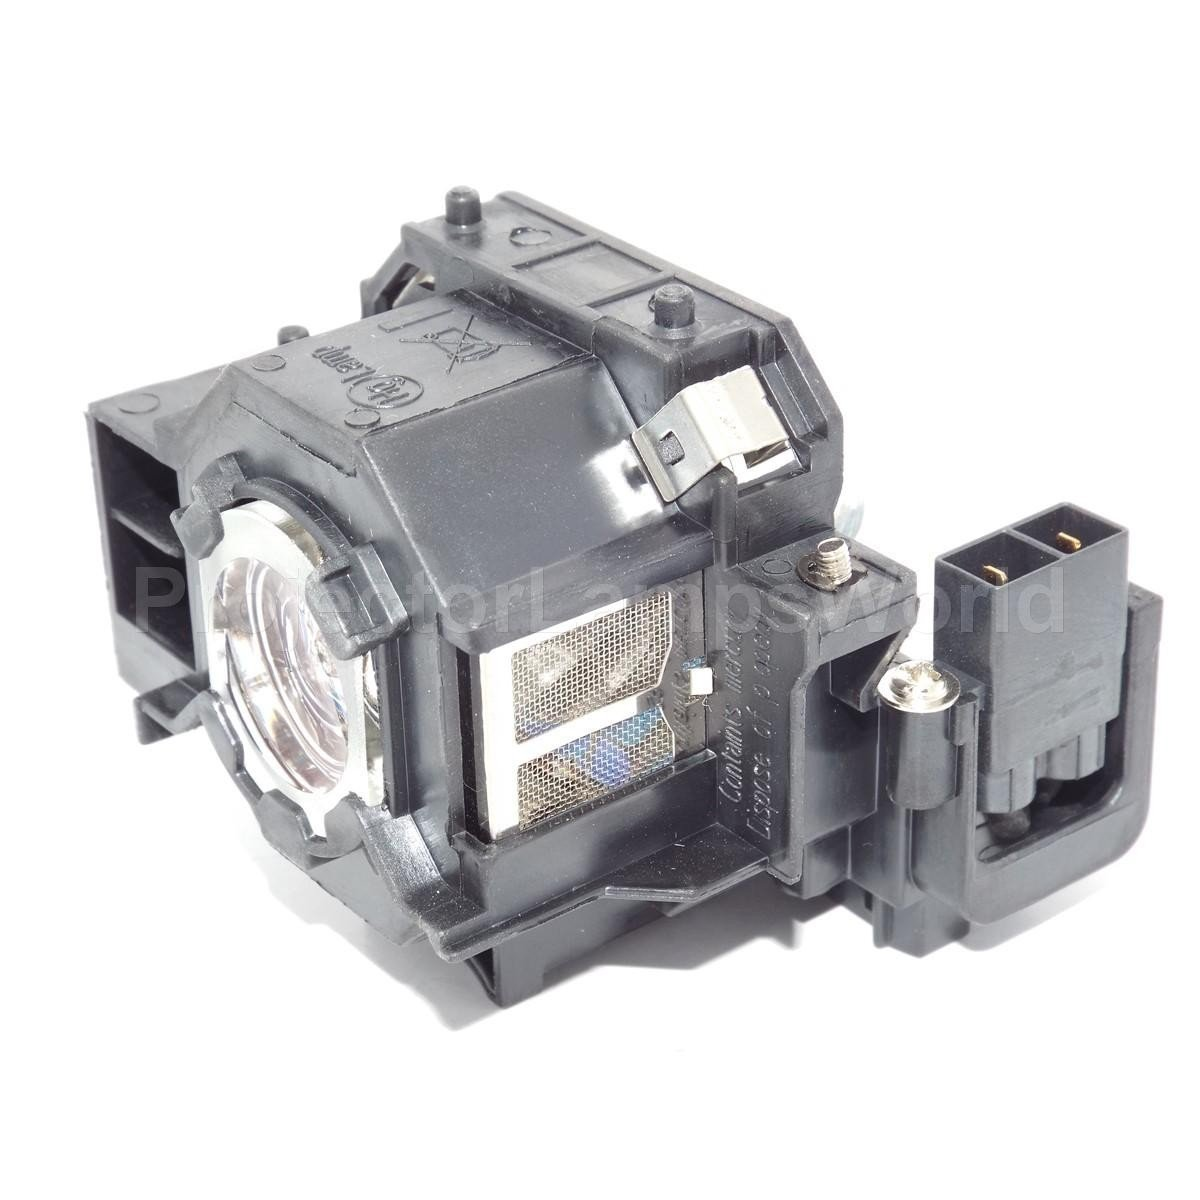 Amazon com: Epson Projector LampH285A: Office Products